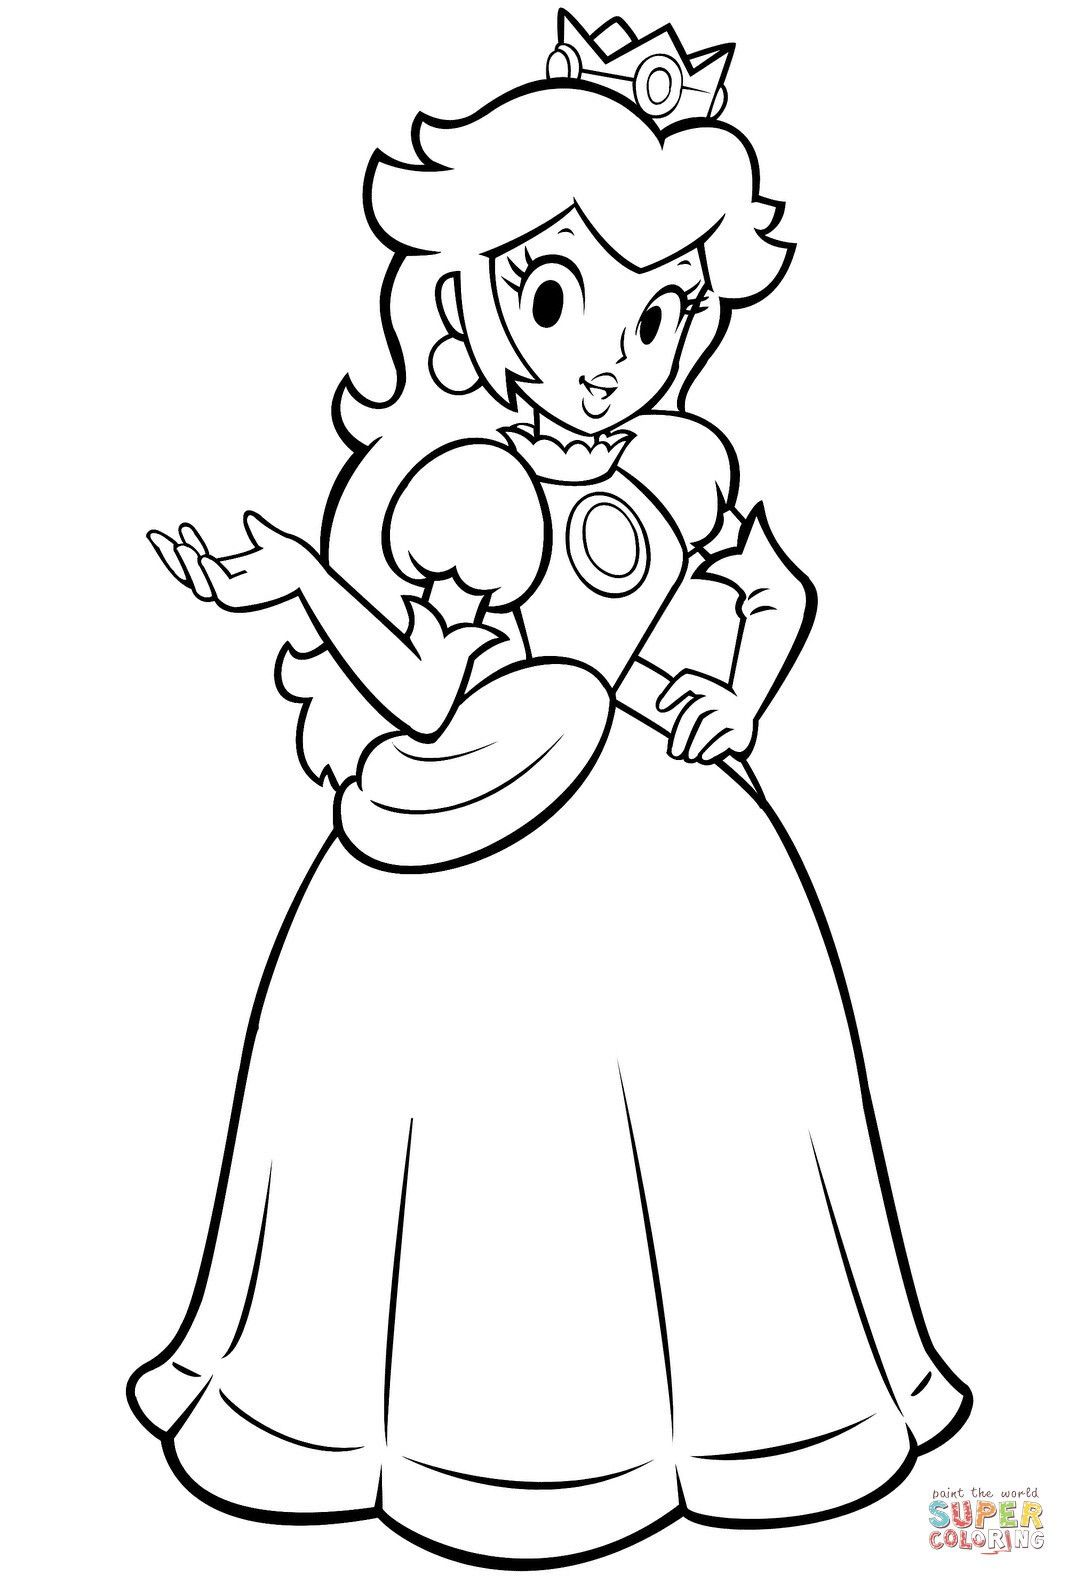 Princess Peach Coloring Pages From The Thousand Photos On The Web About Princess Peac Super Mario Coloring Pages Mario Coloring Pages Princess Coloring Pages